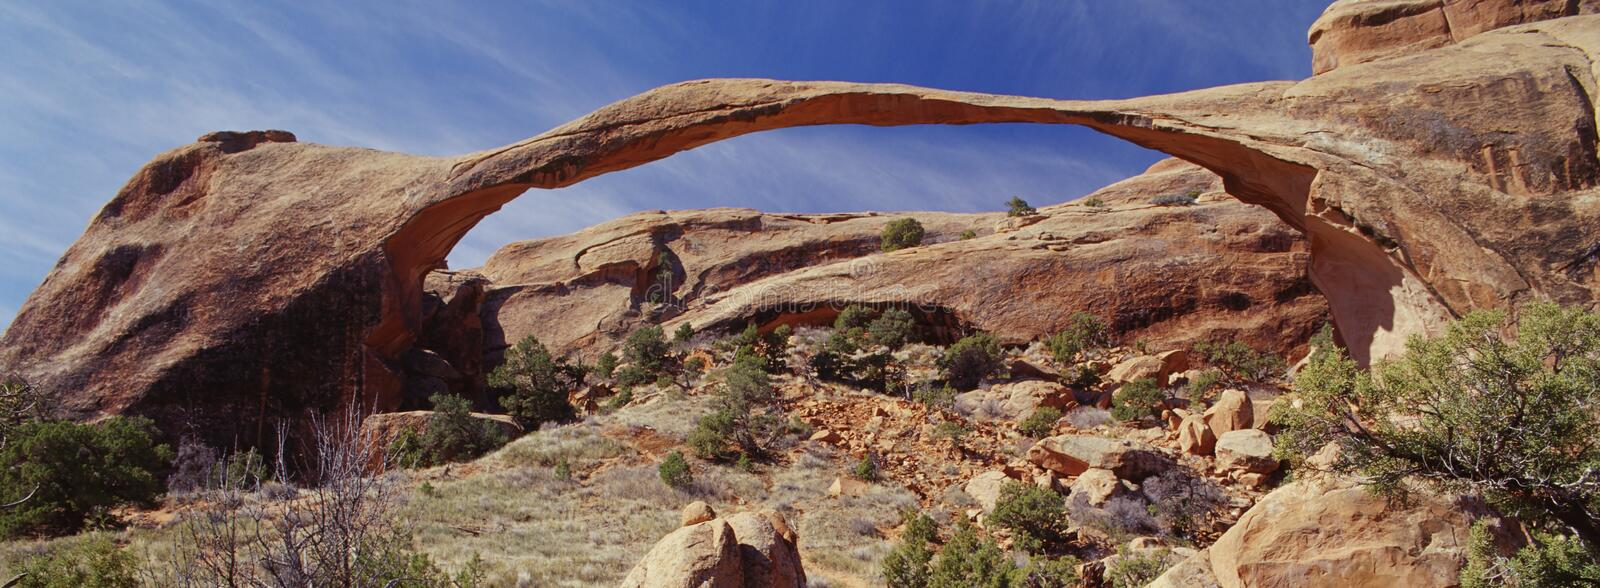 Download Incredible Natural Stone Arch Stock Photo - Image of preservation, park: 1772072